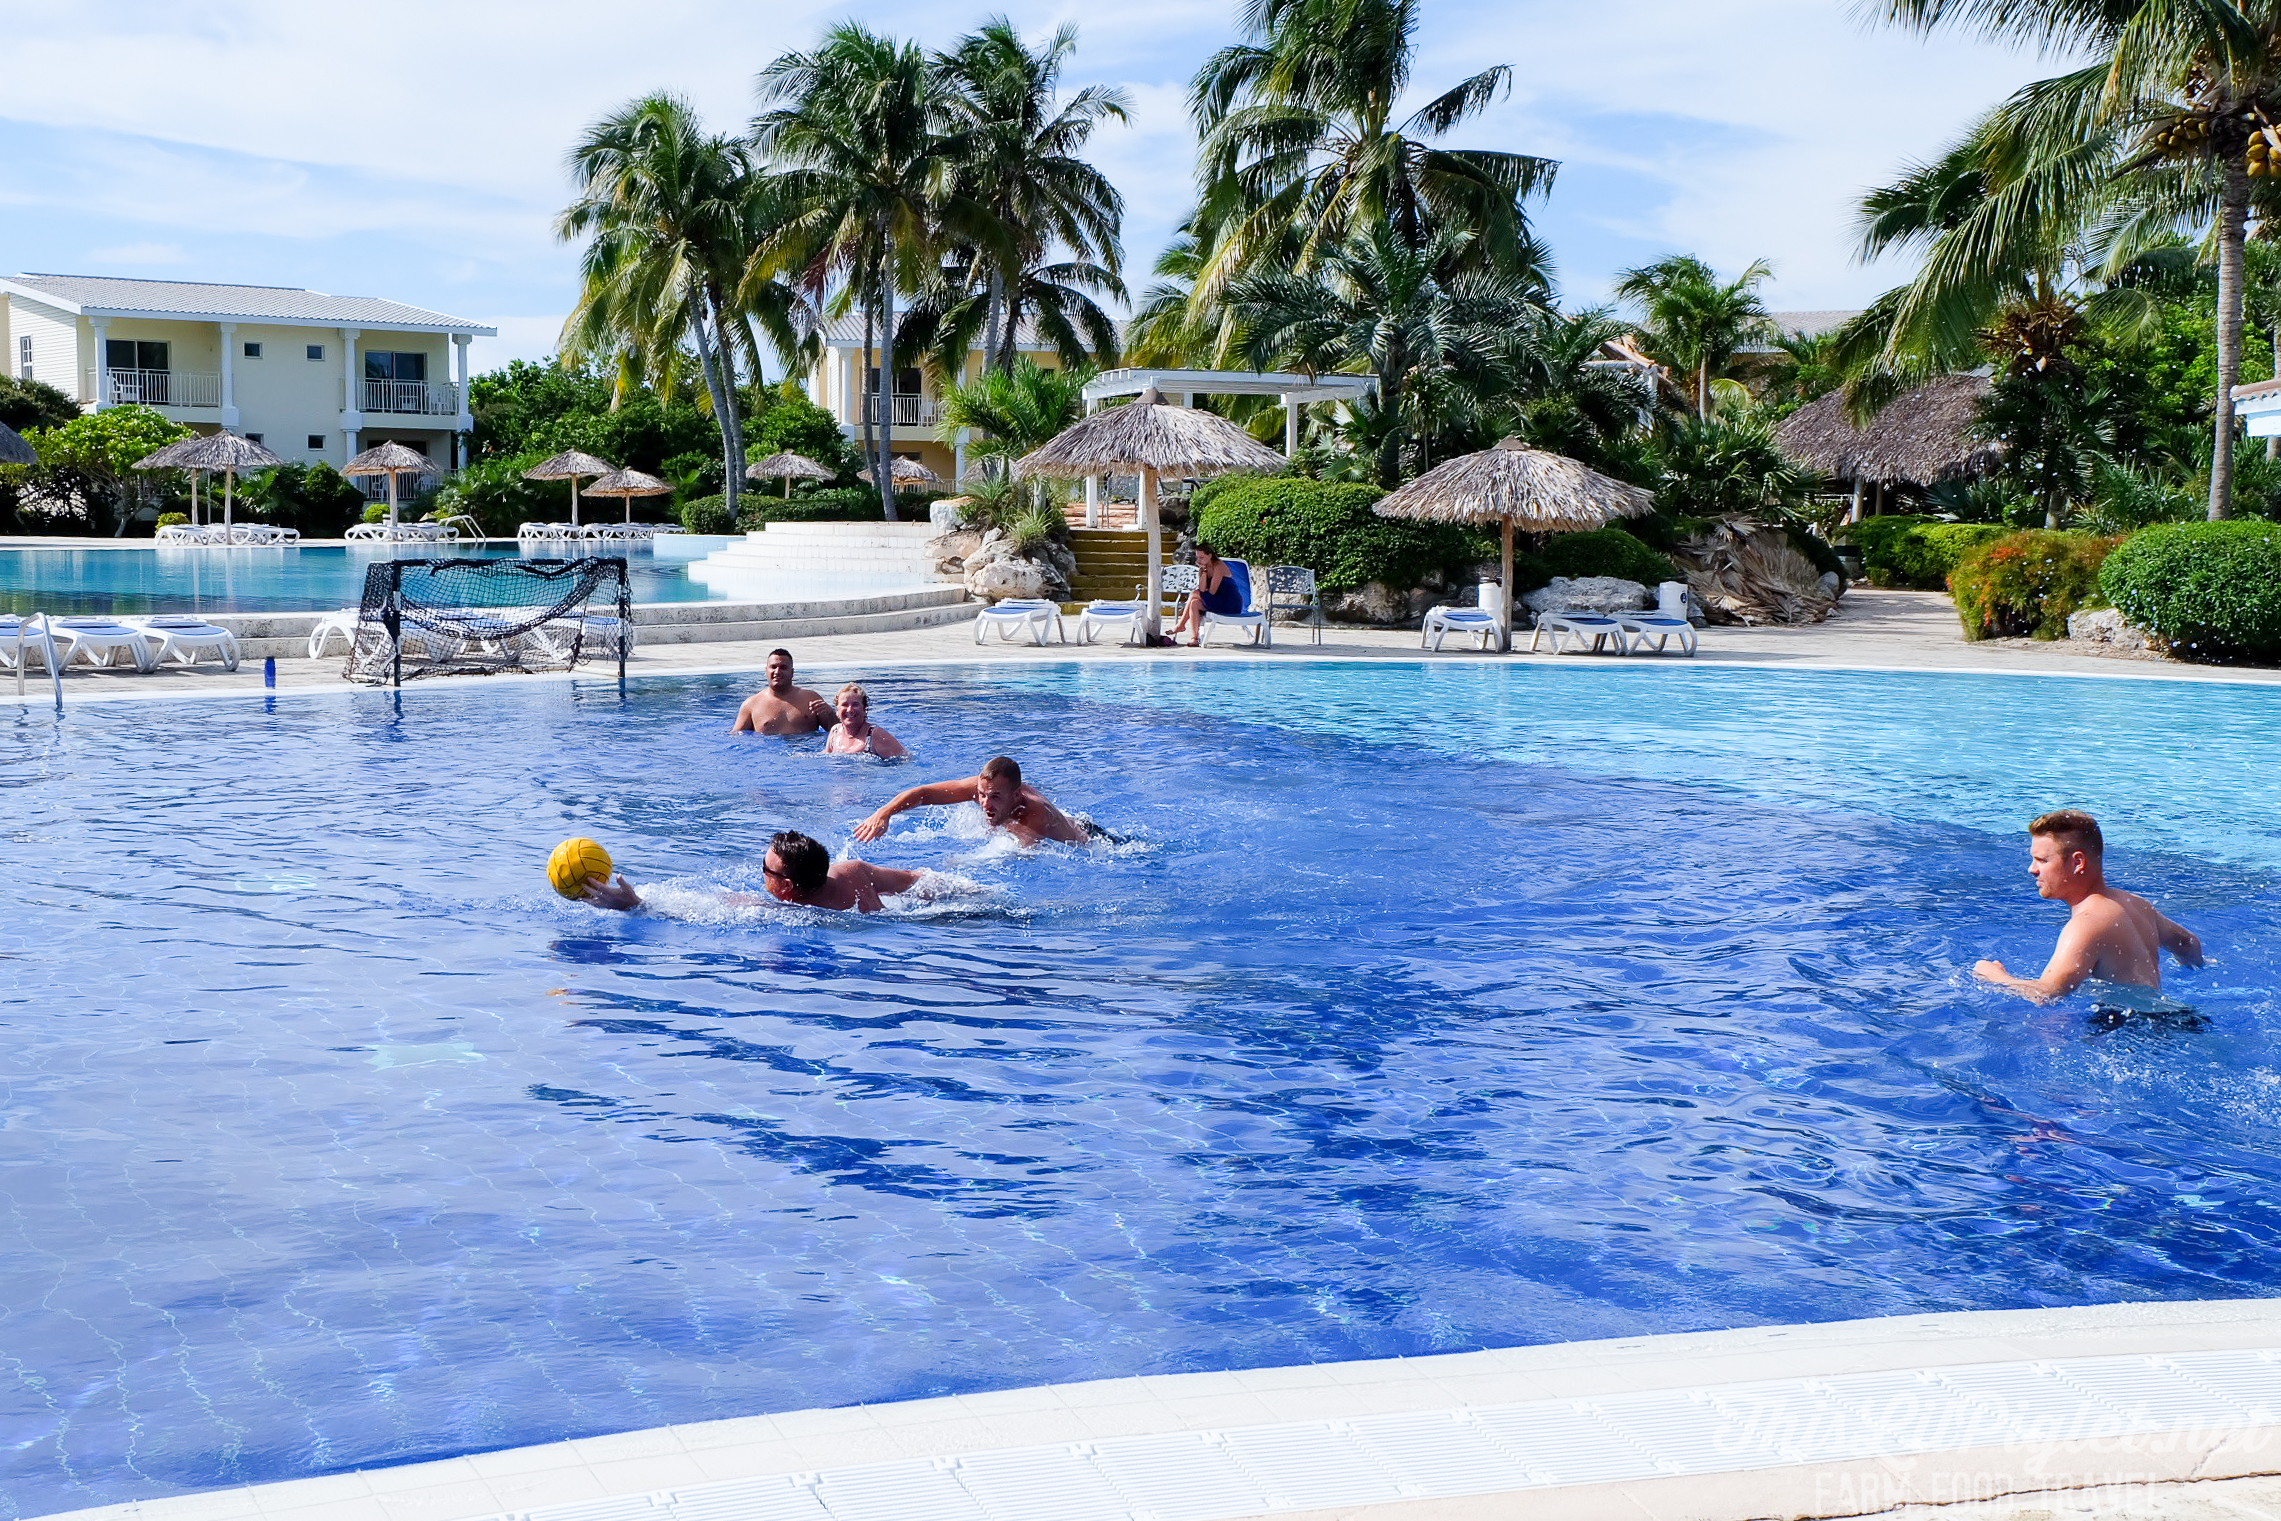 Cuba Couples Travel: Melia Cayo Santa Maria Water Polo // thislilpiglet.net